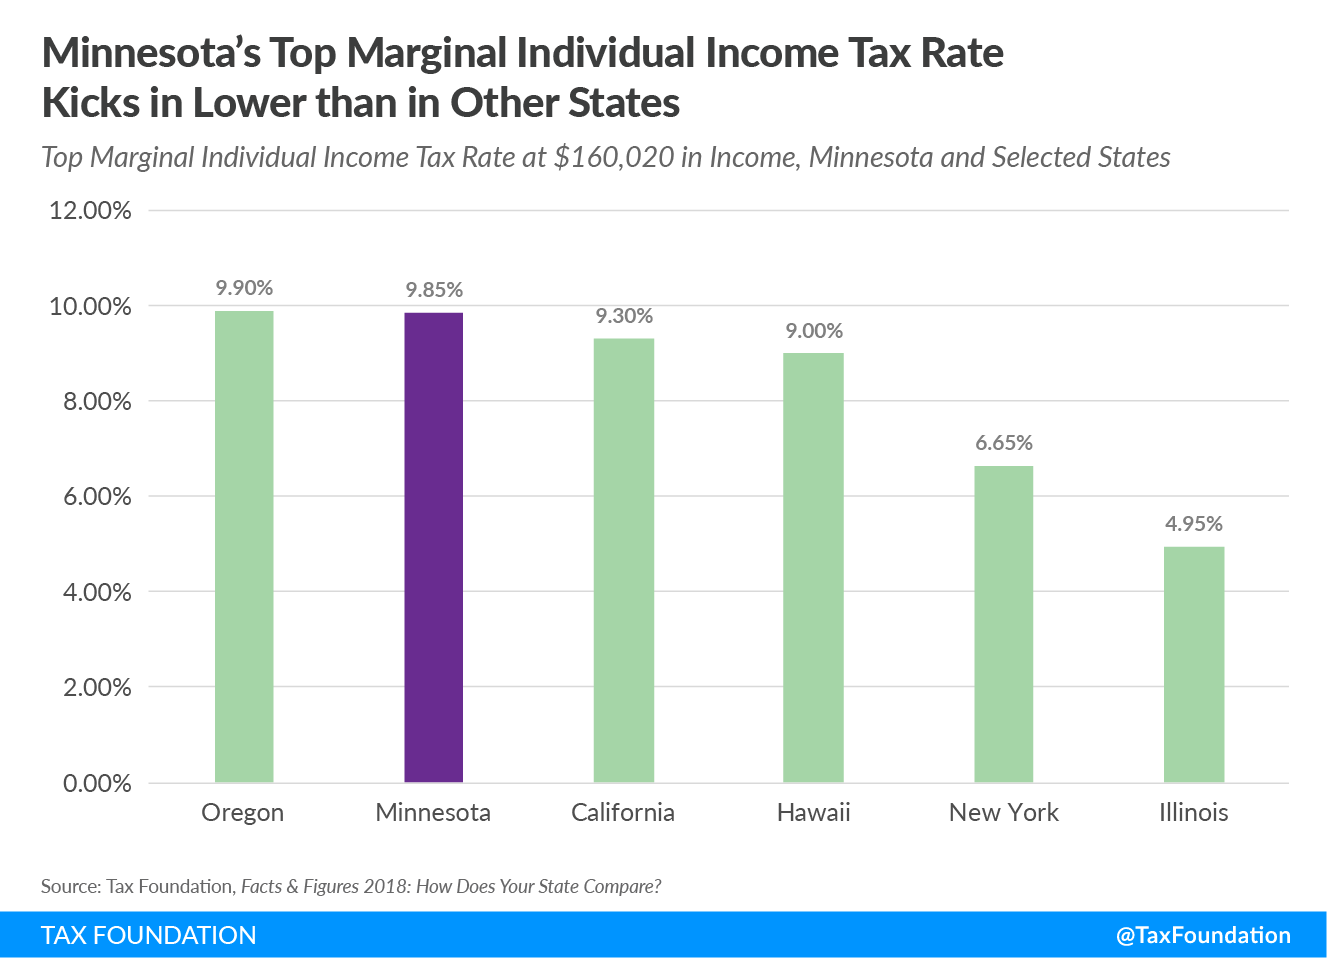 Minnesota's Top Marginal Individual Income Tax Rate Kicks in Lower than in Other States